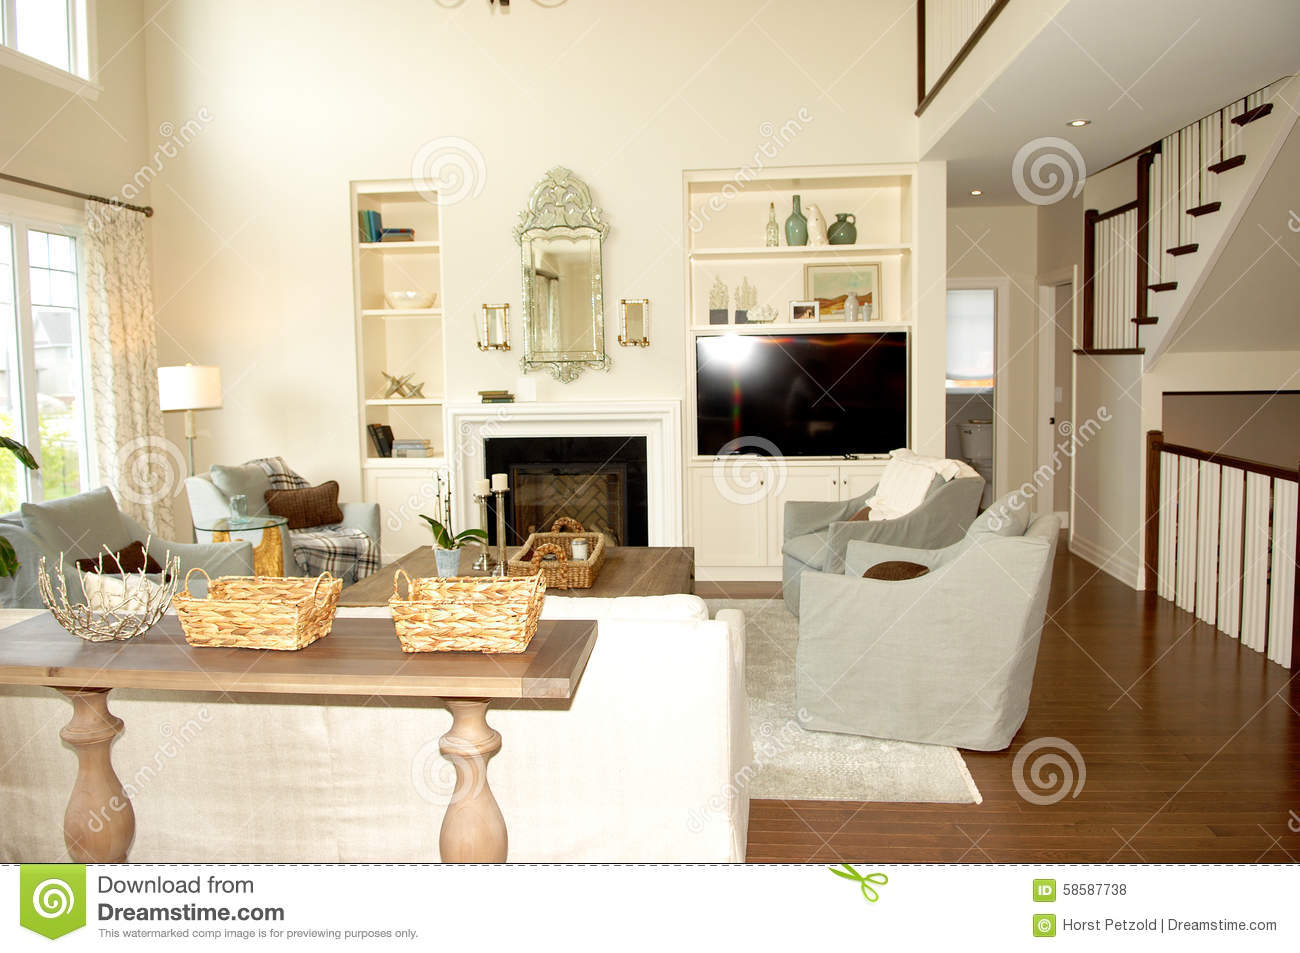 Living Room With Fireplace And Stairs. Stock Photo - Image of bright ...